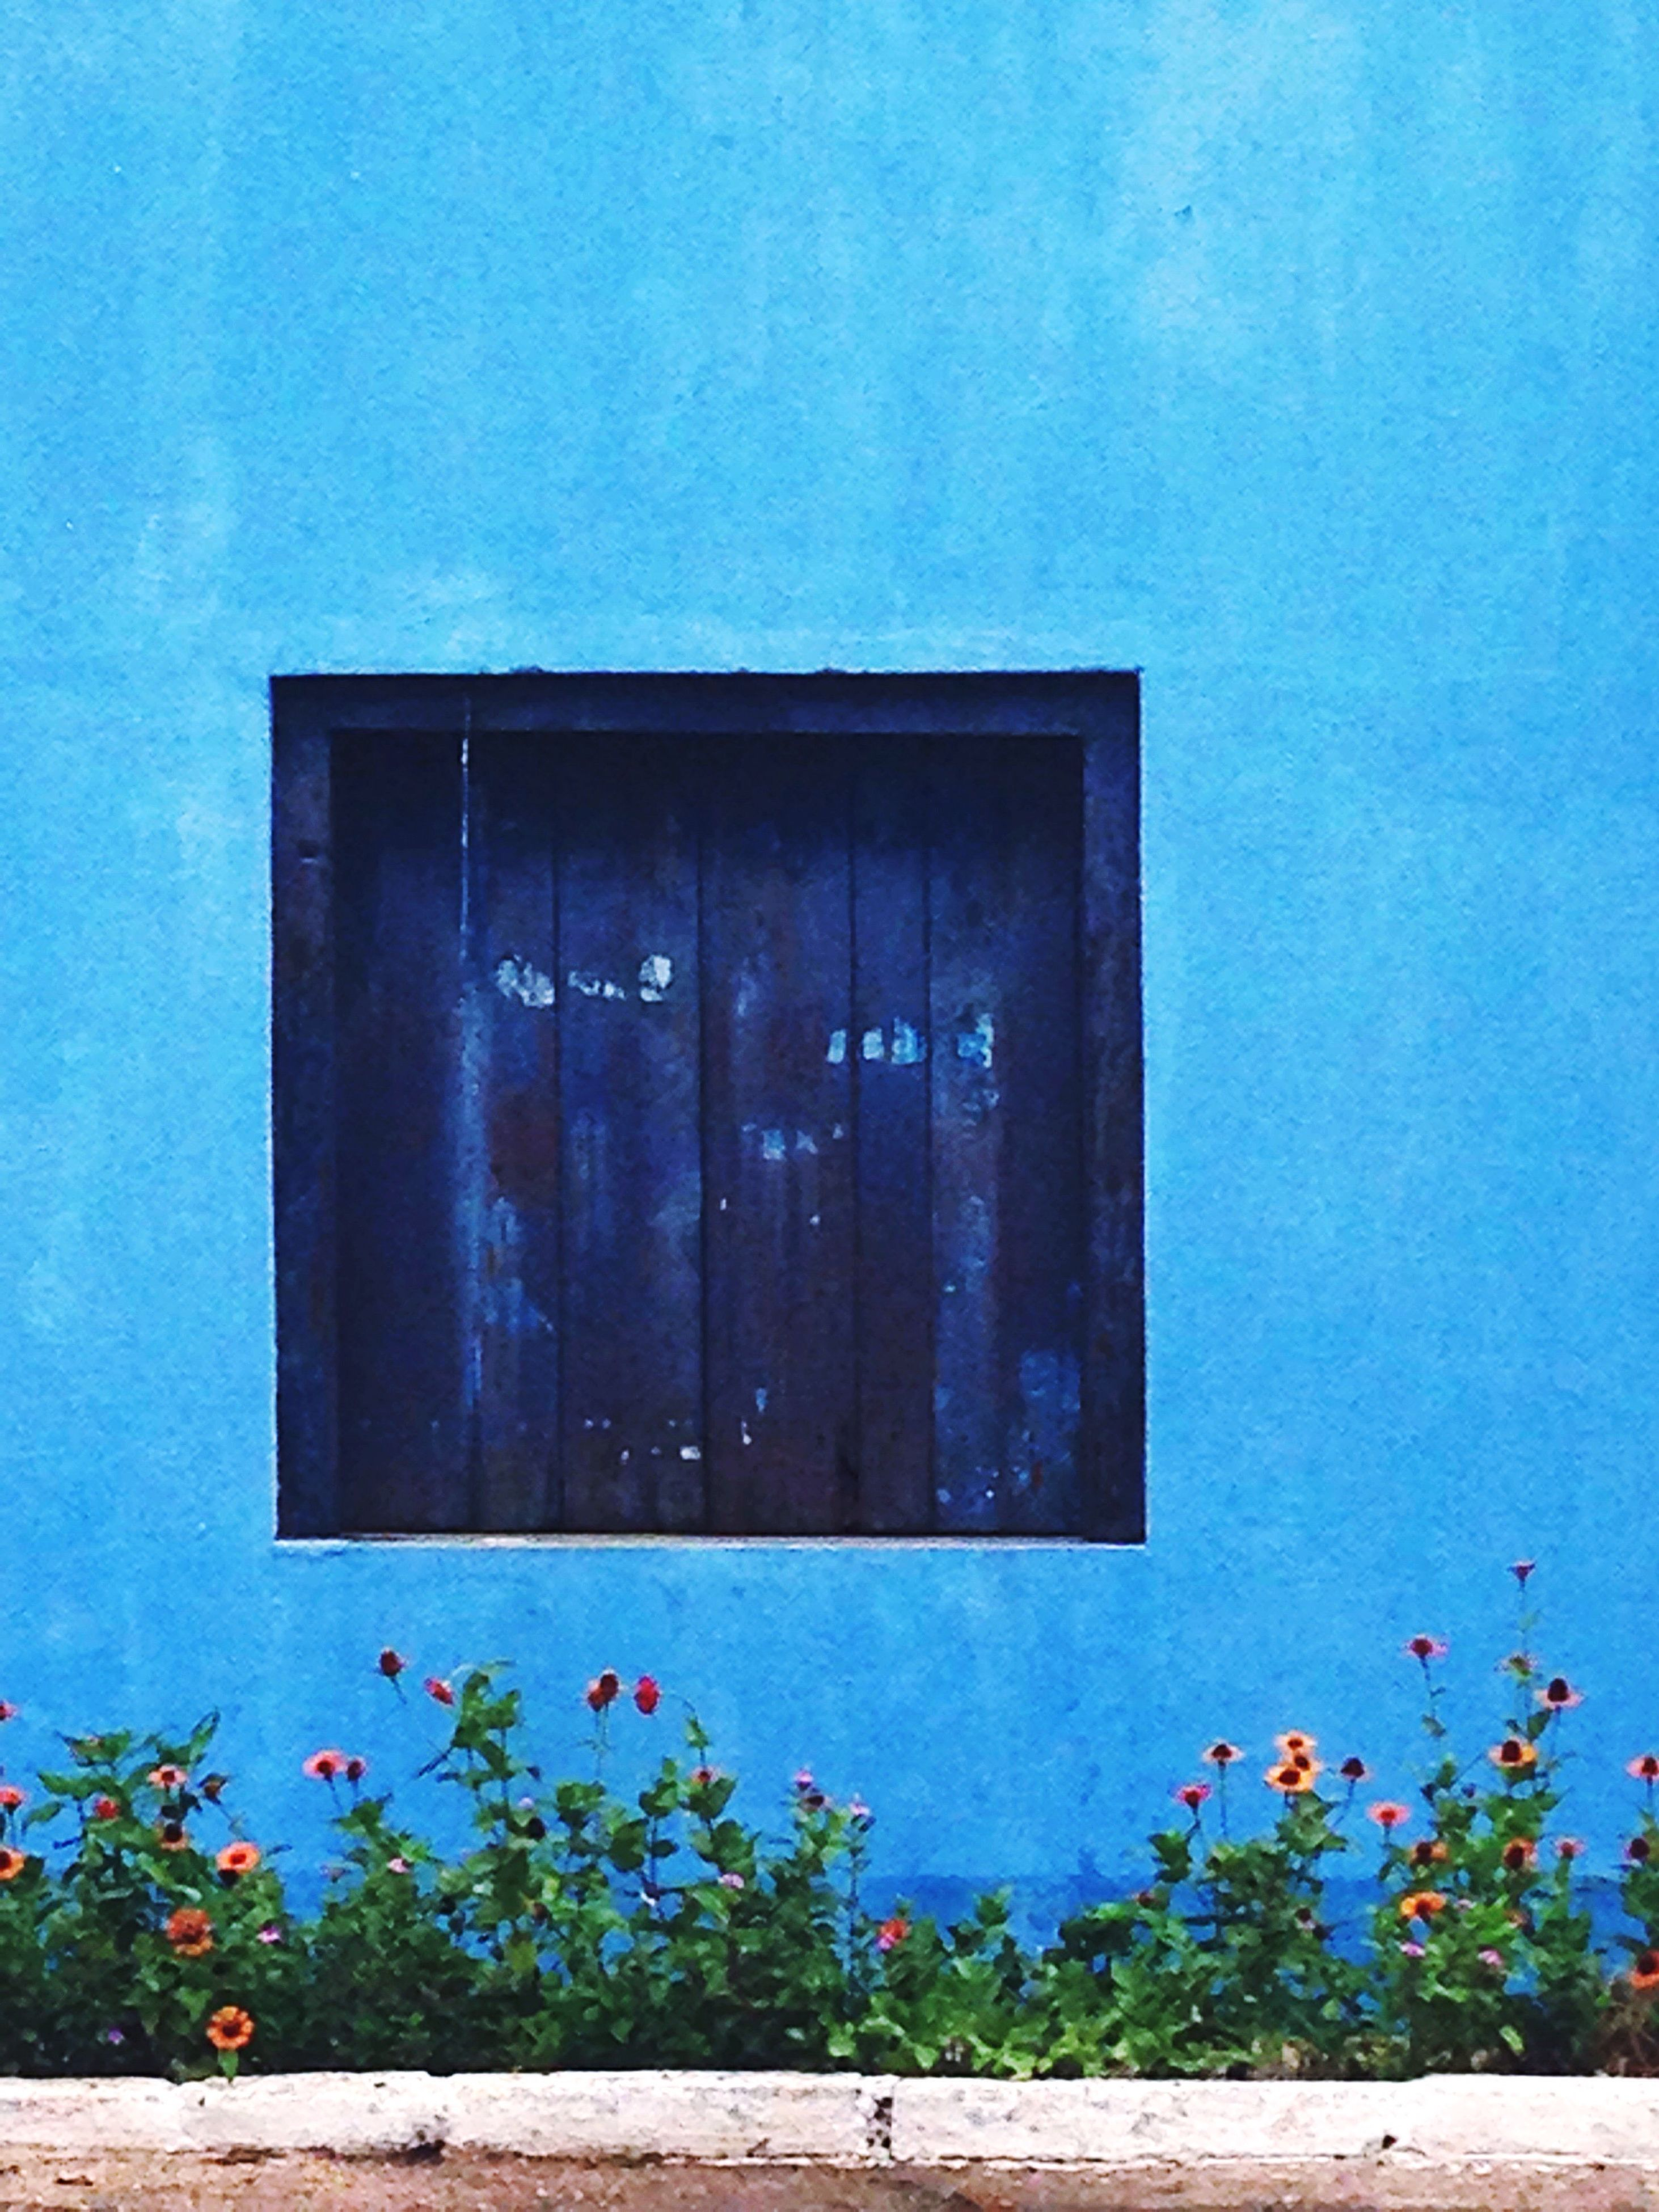 built structure, architecture, building exterior, blue, closed, wall - building feature, door, house, plant, wall, window, flower, growth, day, wood - material, no people, outdoors, potted plant, residential structure, green color